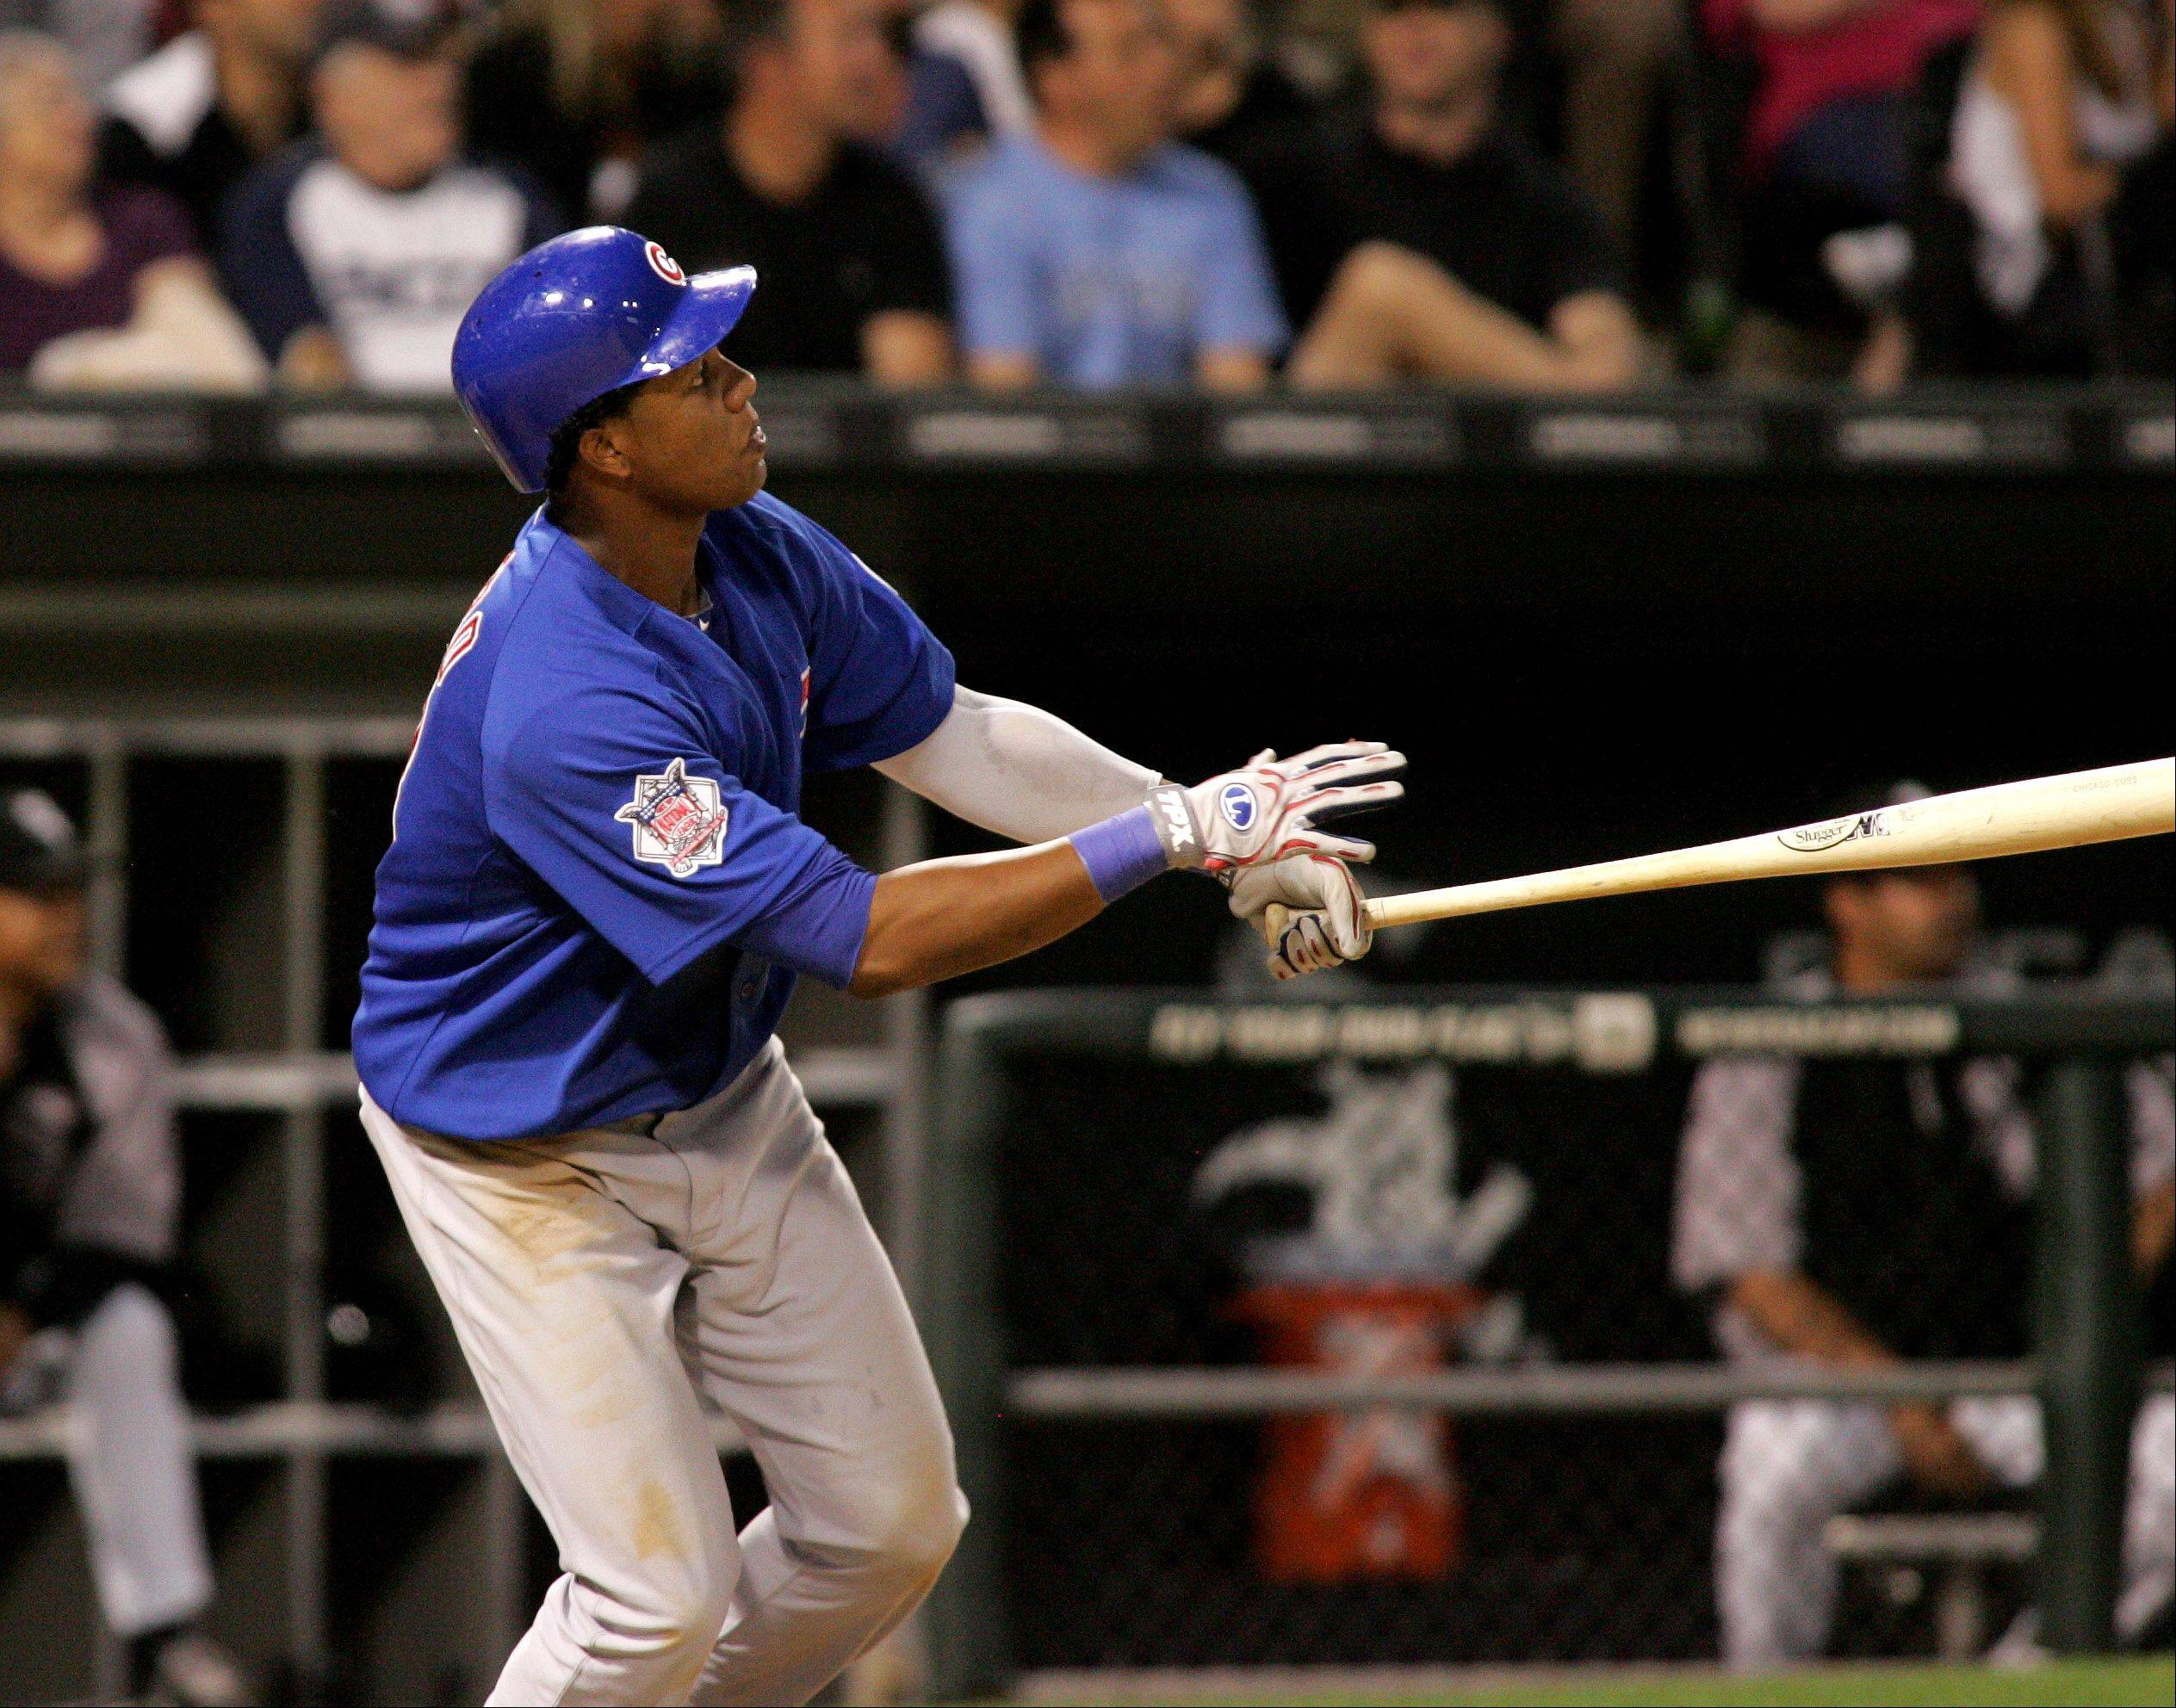 Bev Horne/bhorne@dailyherald.com Cubs shortstop Starlin Castro wasn�t in the starting lineup Monday night after showing a lack of concentration on the field the previous night.